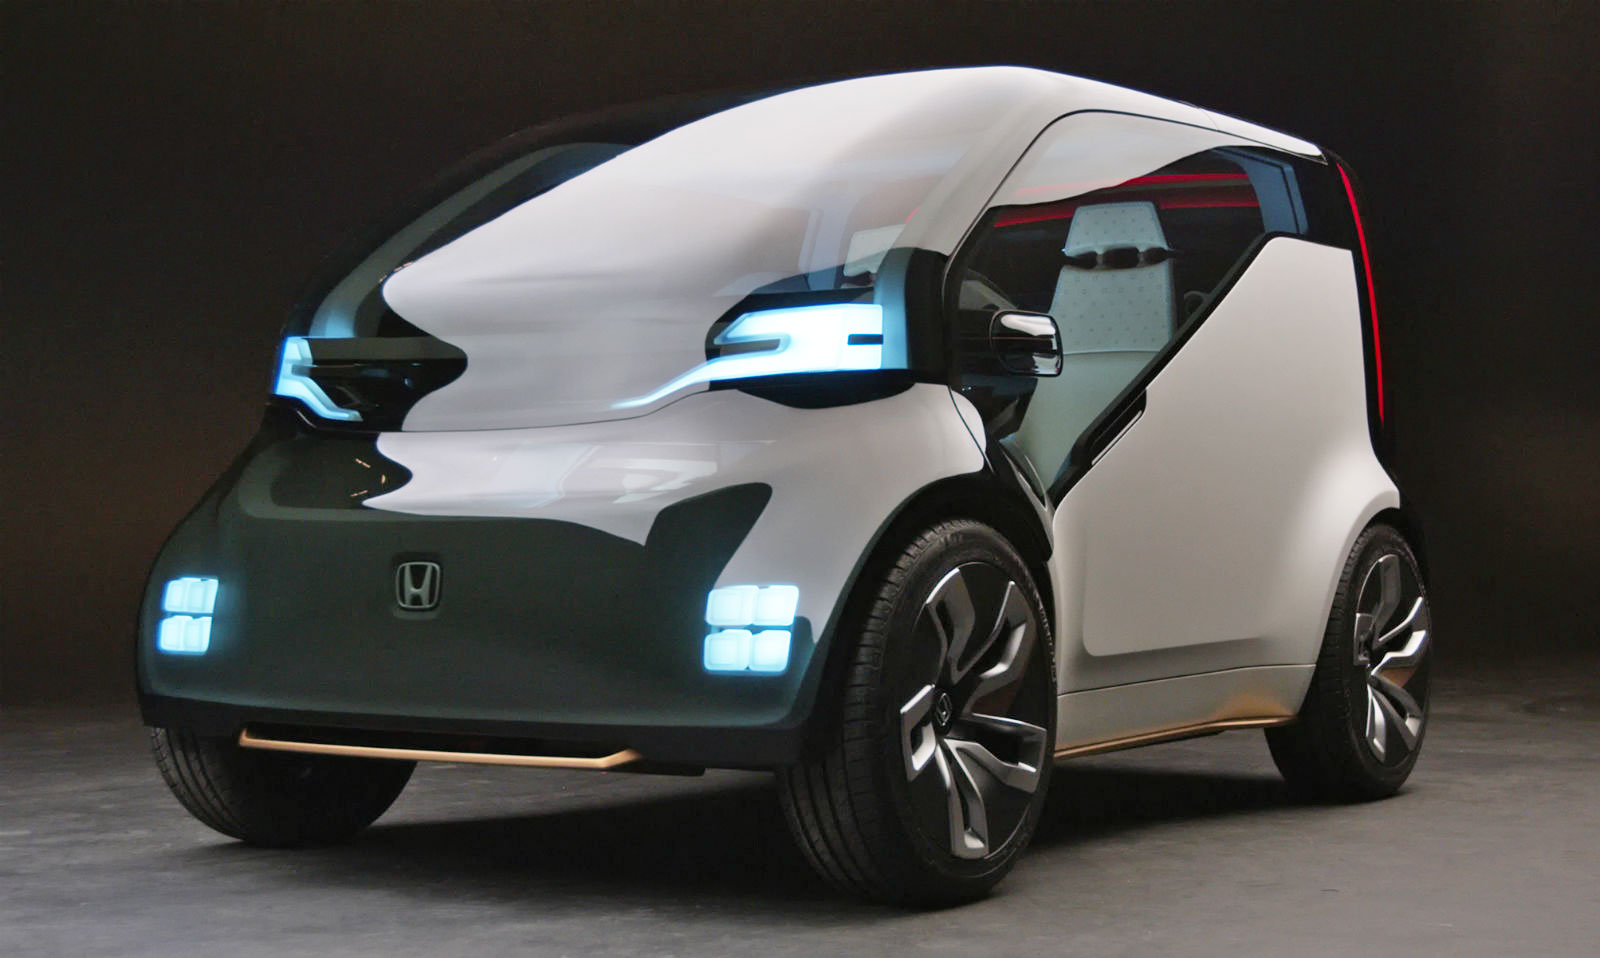 Honda\'s connected cars will communicate over 5G